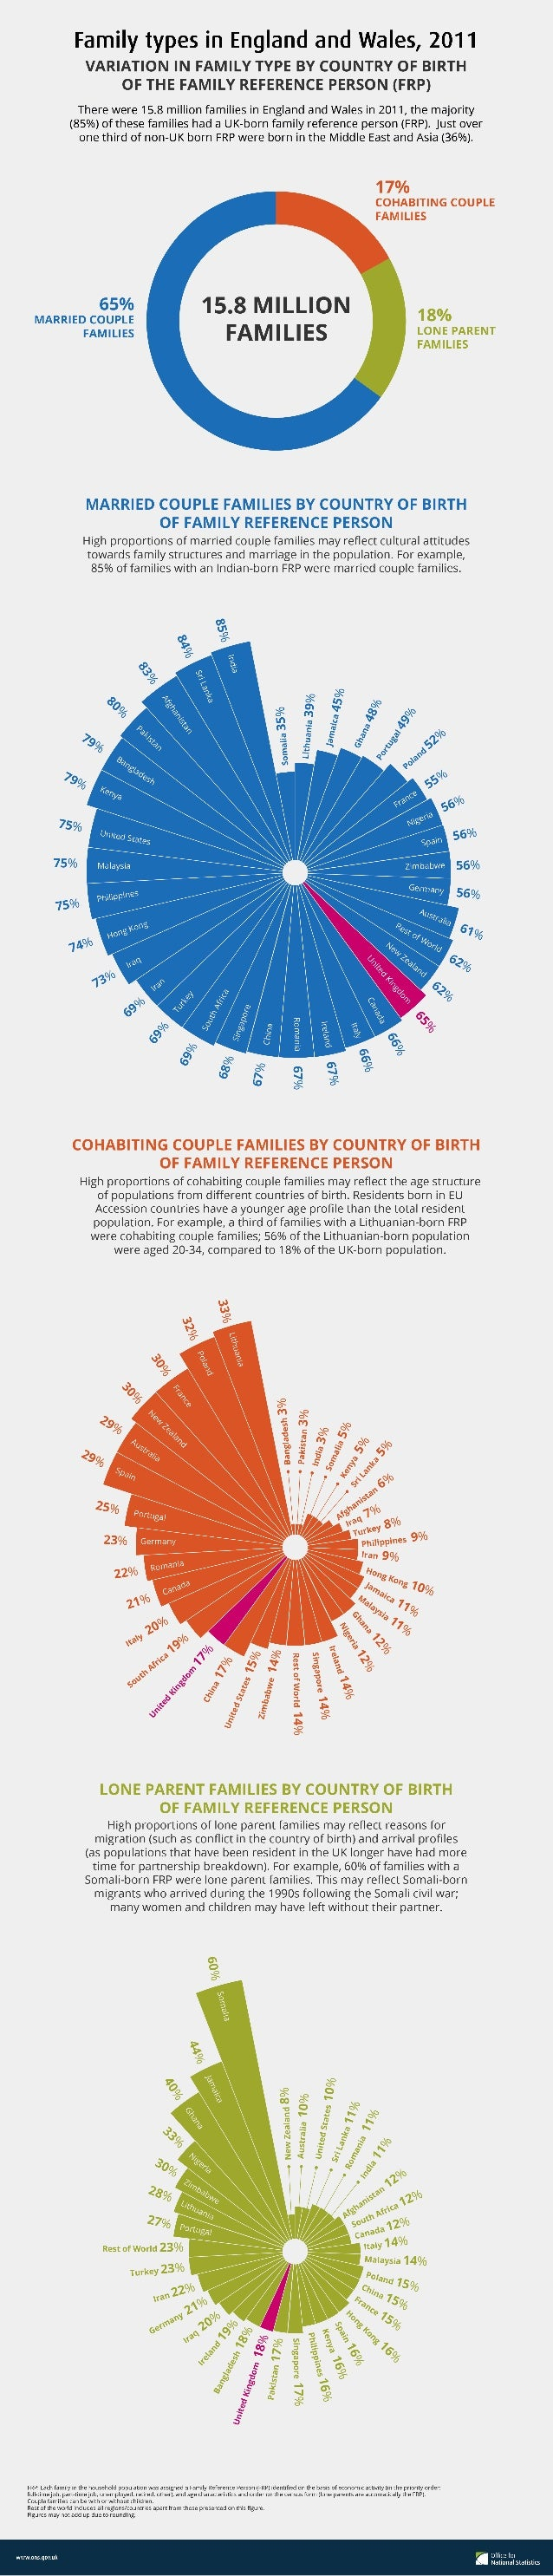 Family Types in England and Wales in 2011 - Census Data